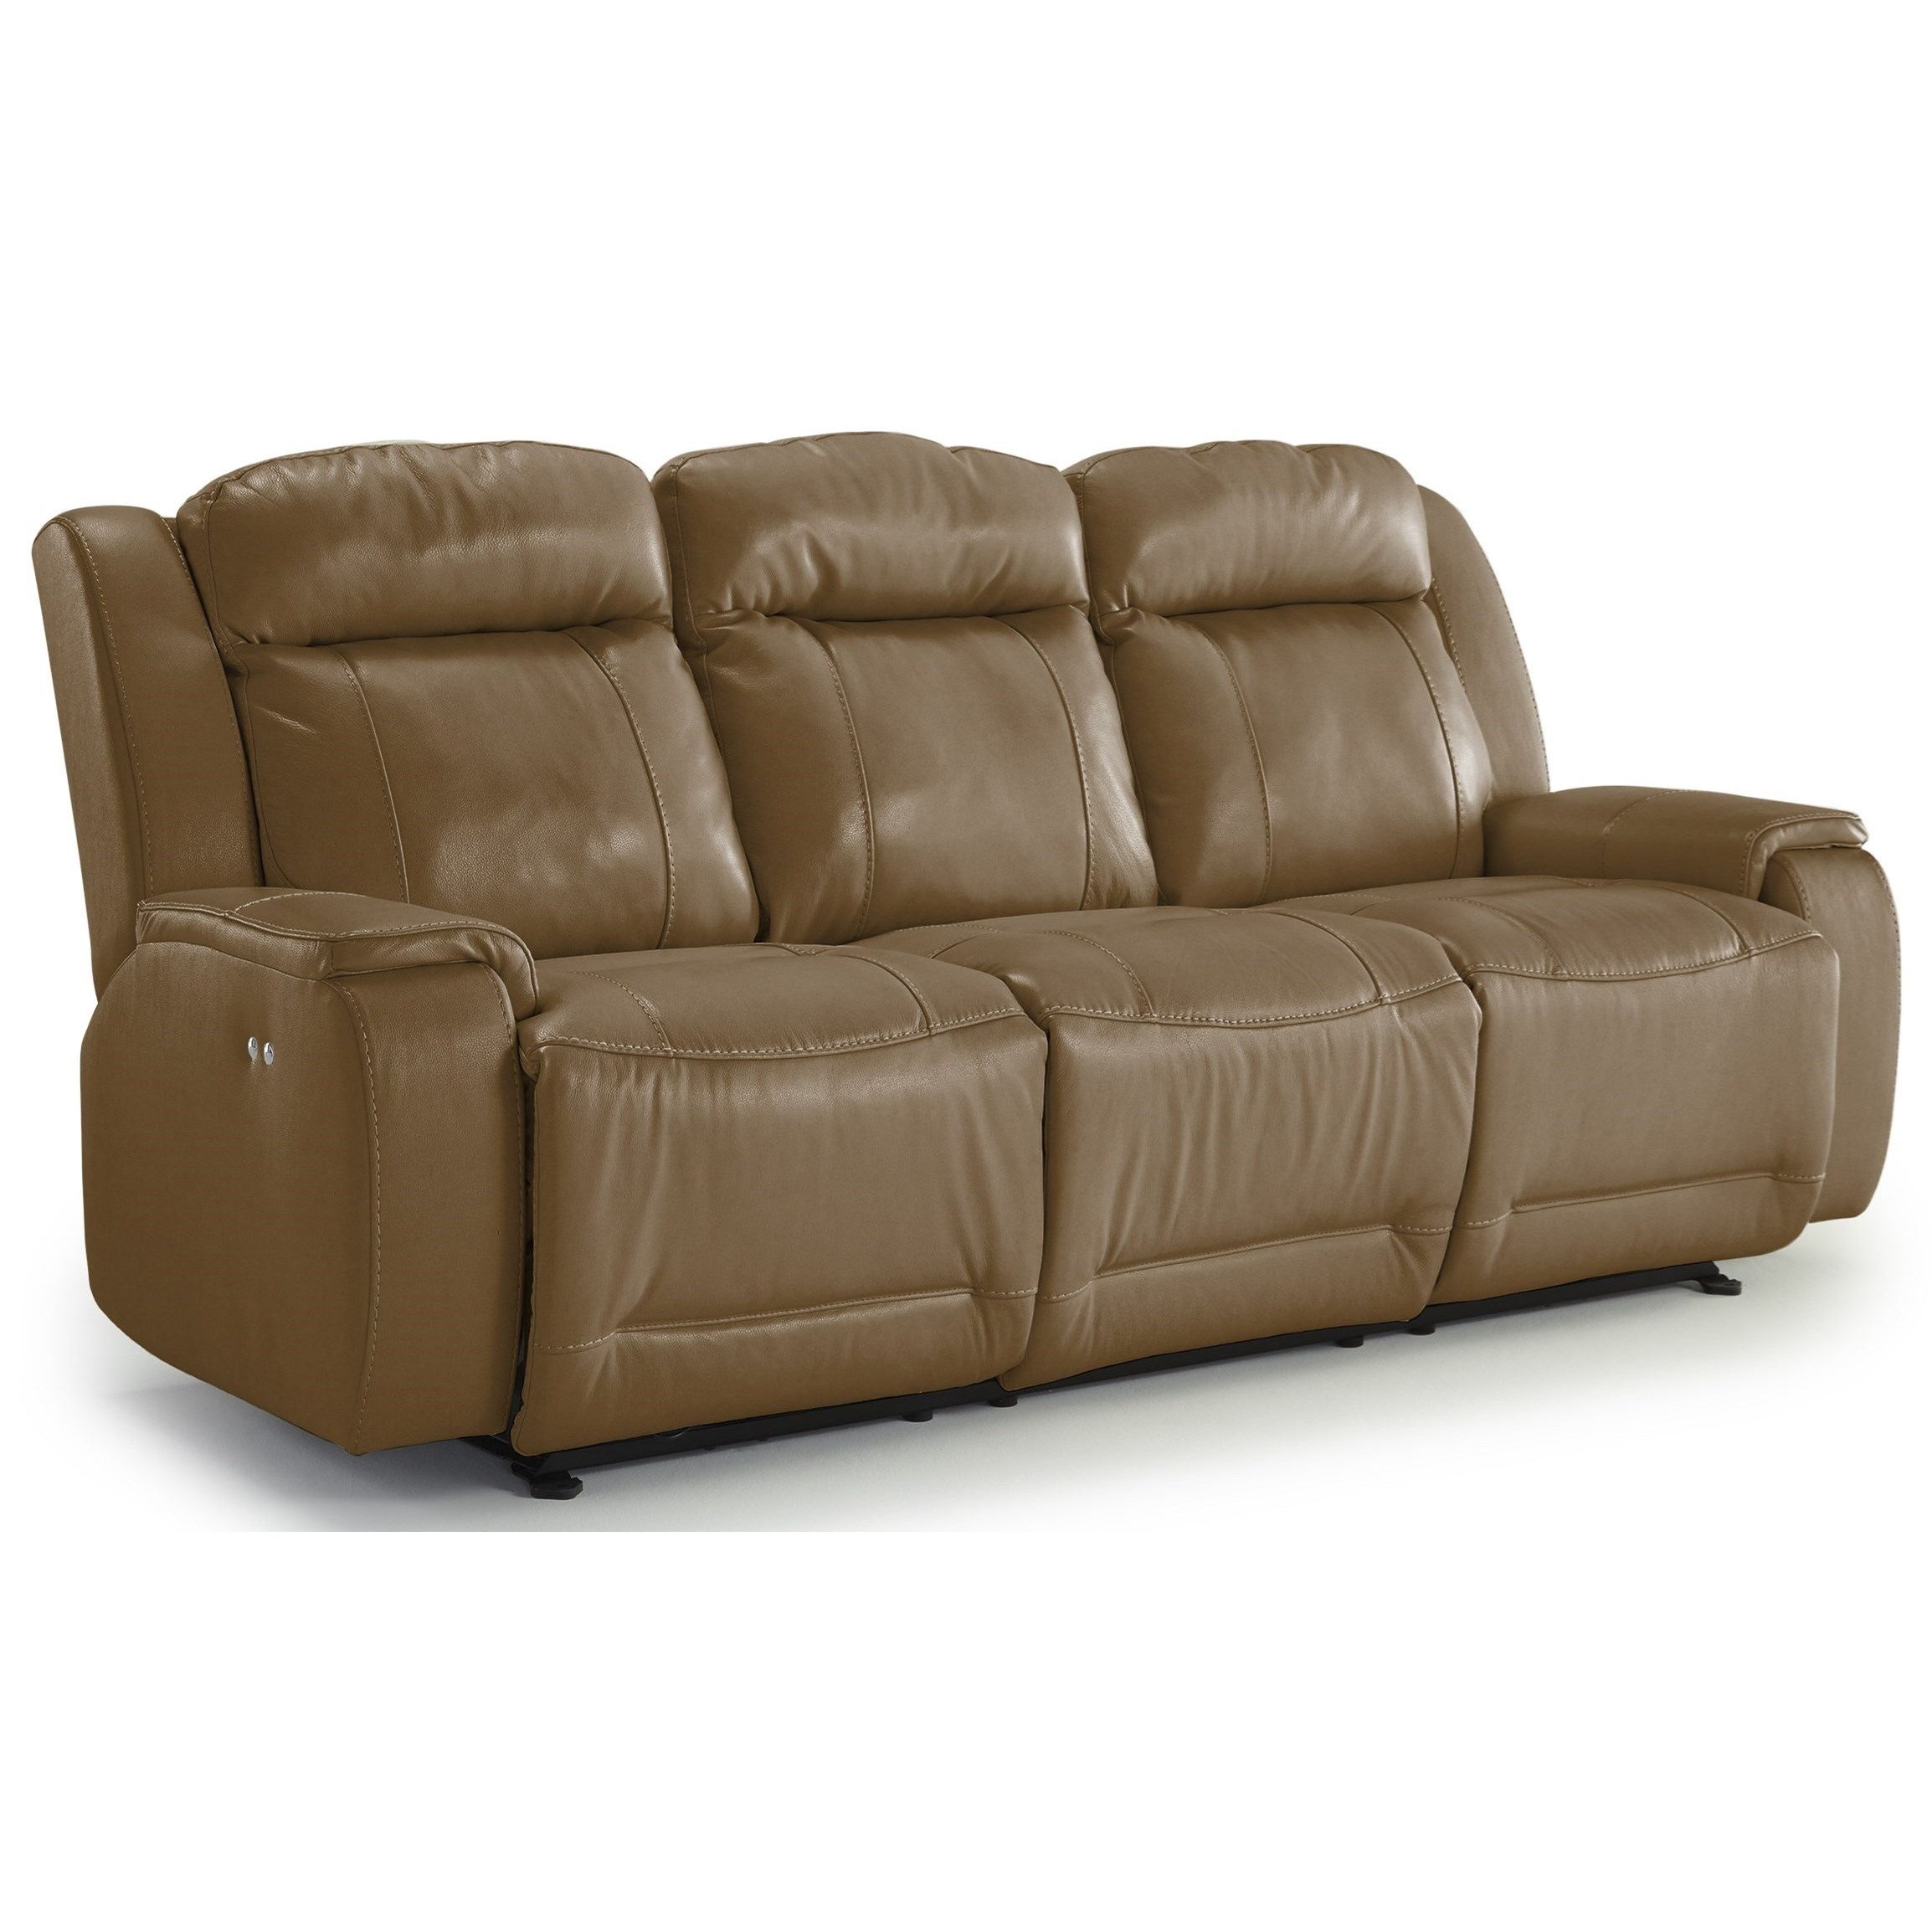 Best Home Furnishings Hardisty Reclining Sofa - Item Number: -2020650638-25276